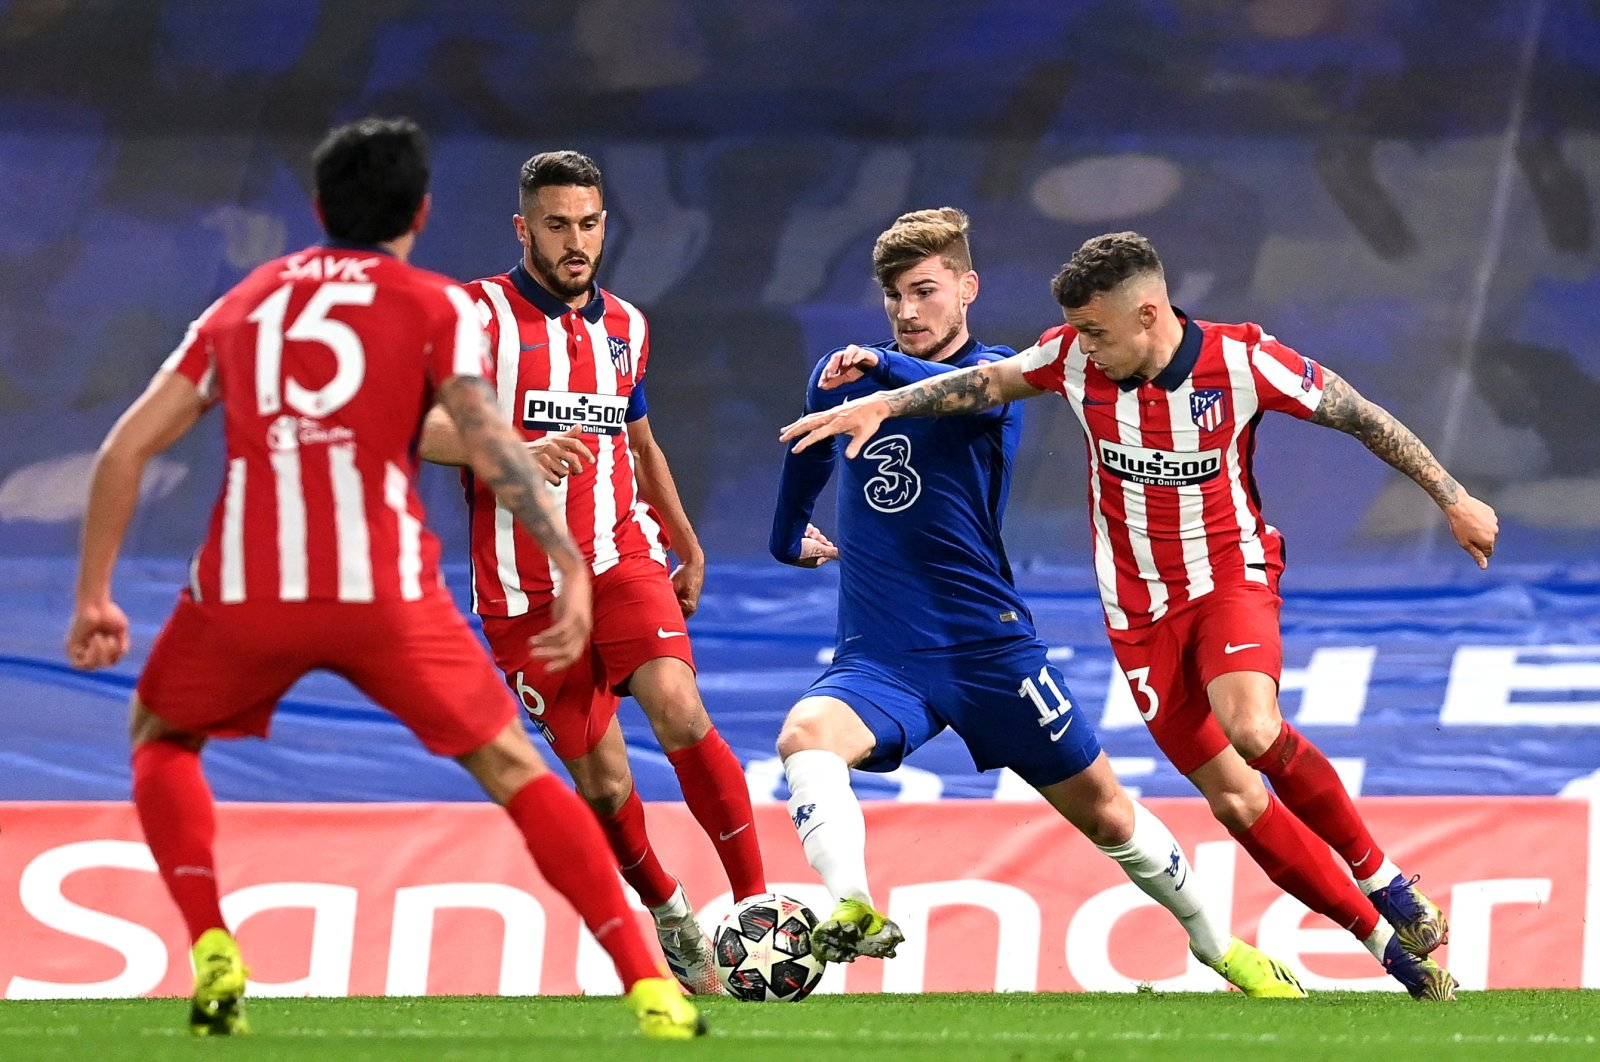 Chelsea's Timo Werner (2nd R) in action against Atletico players Koke (2nd L) and Kieran Trippier (R) during the UEFA Champions League Round of 16, second leg match in London, Britain, 17 March 2021. (EPA Photo)